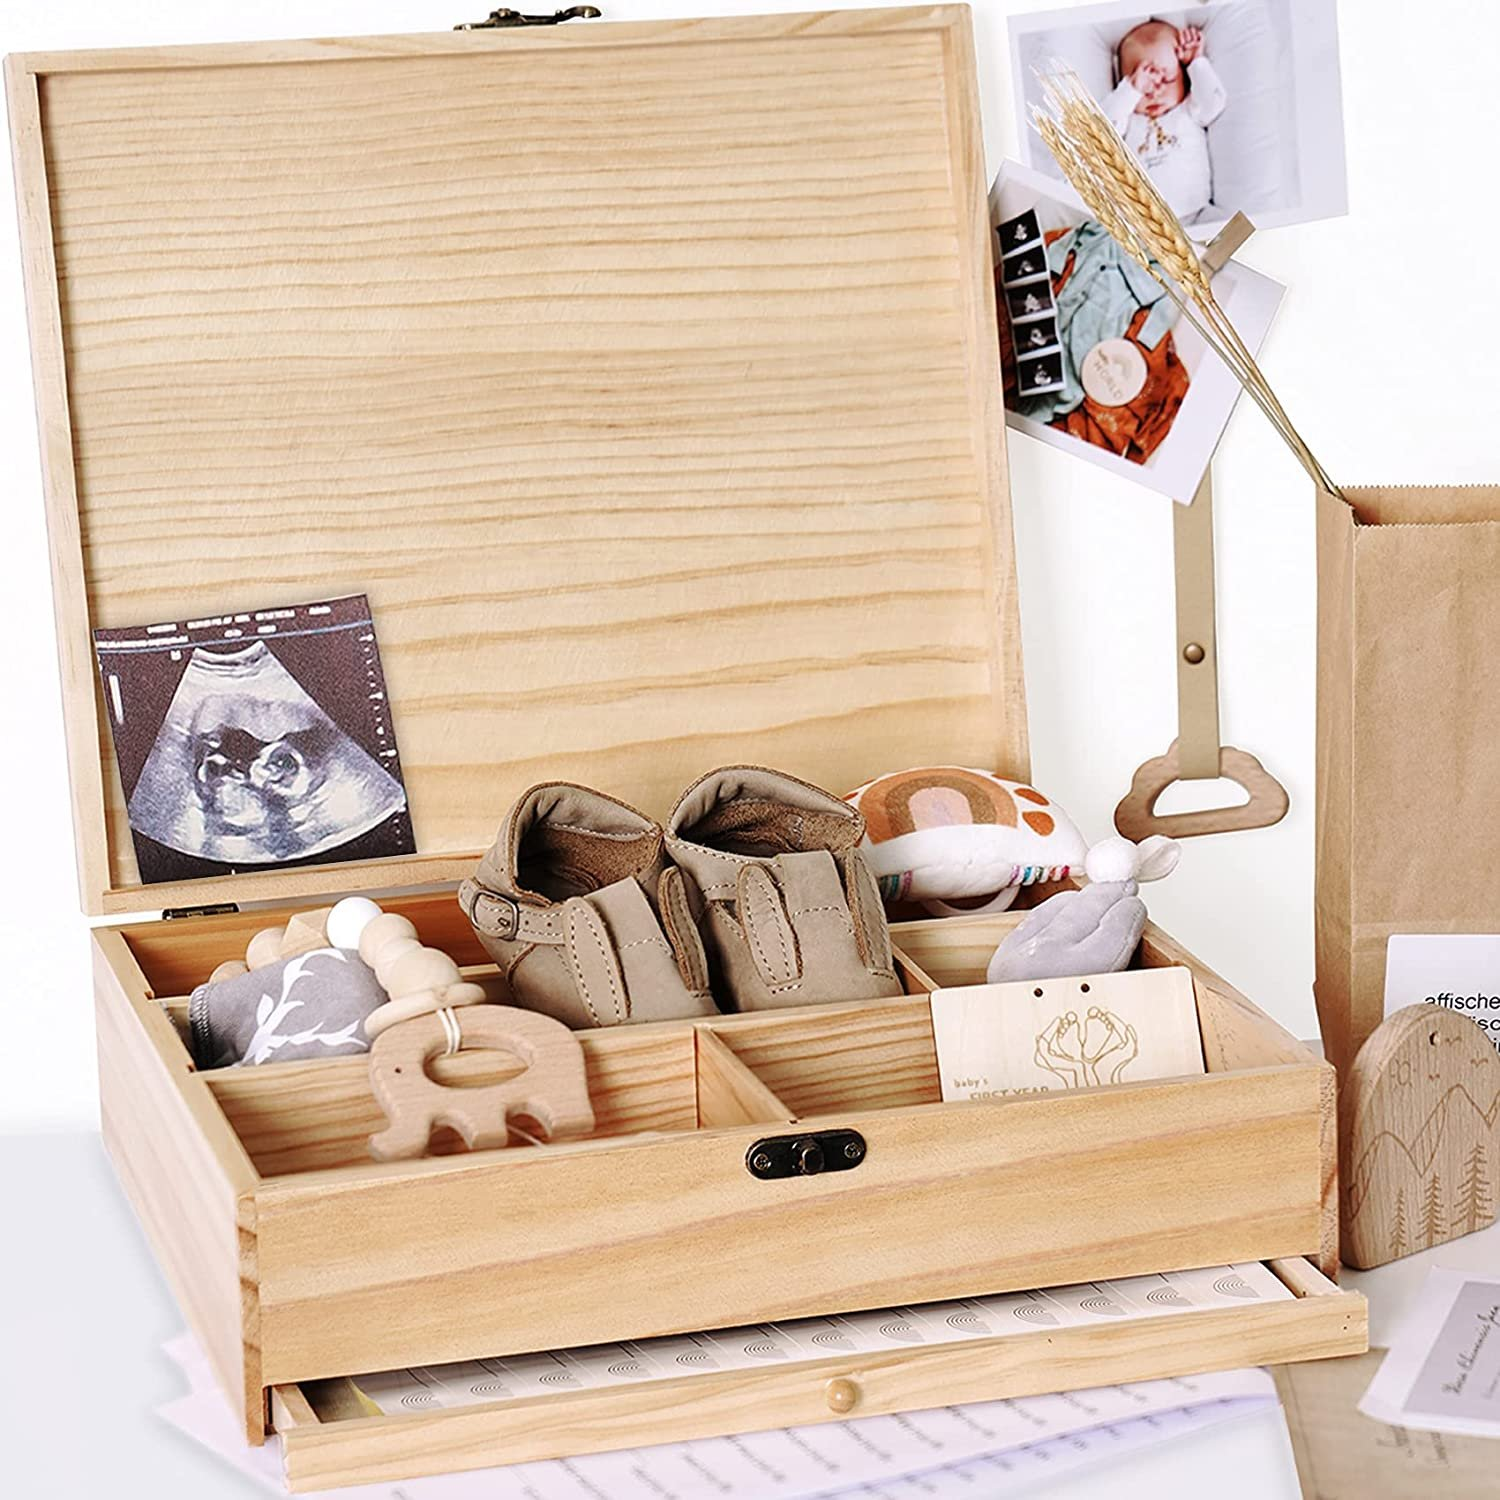 Baby's First Year Memory Library Baby Keepsake Box Wooden -Gift for New Mom- shower Birthday